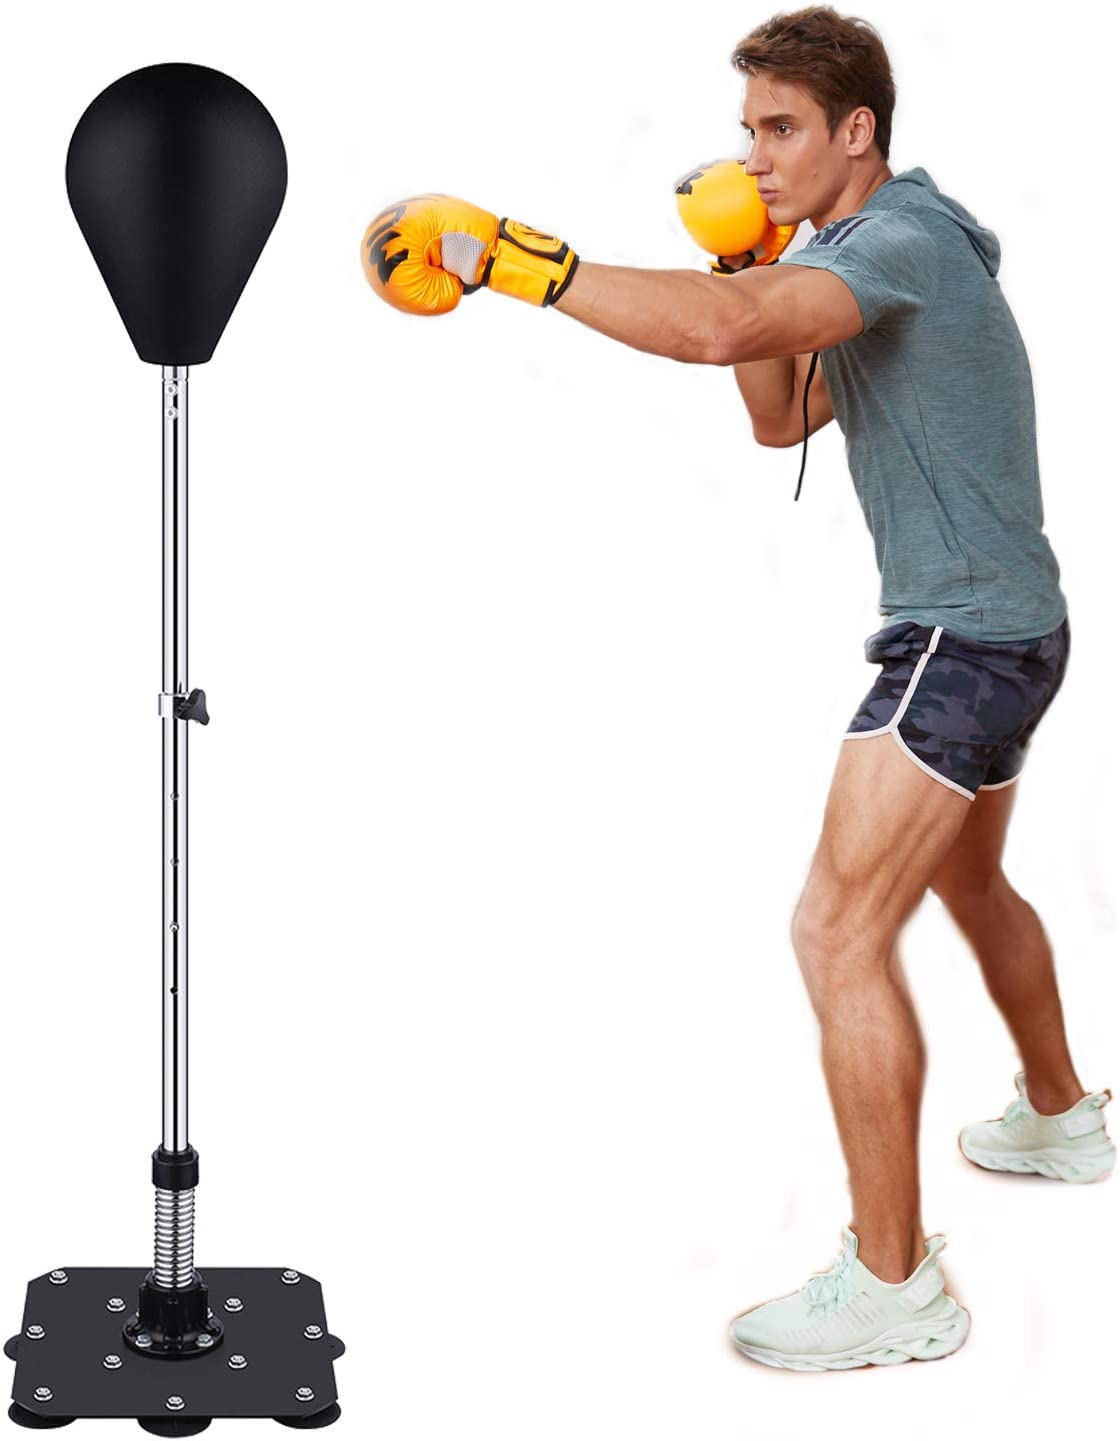 Mauccau Punching Bag with Stand Adjustable Solid Speed Punching Bag with Reflex Bar PU Boxing Bag Home Outdoors Gym for Adults Kids